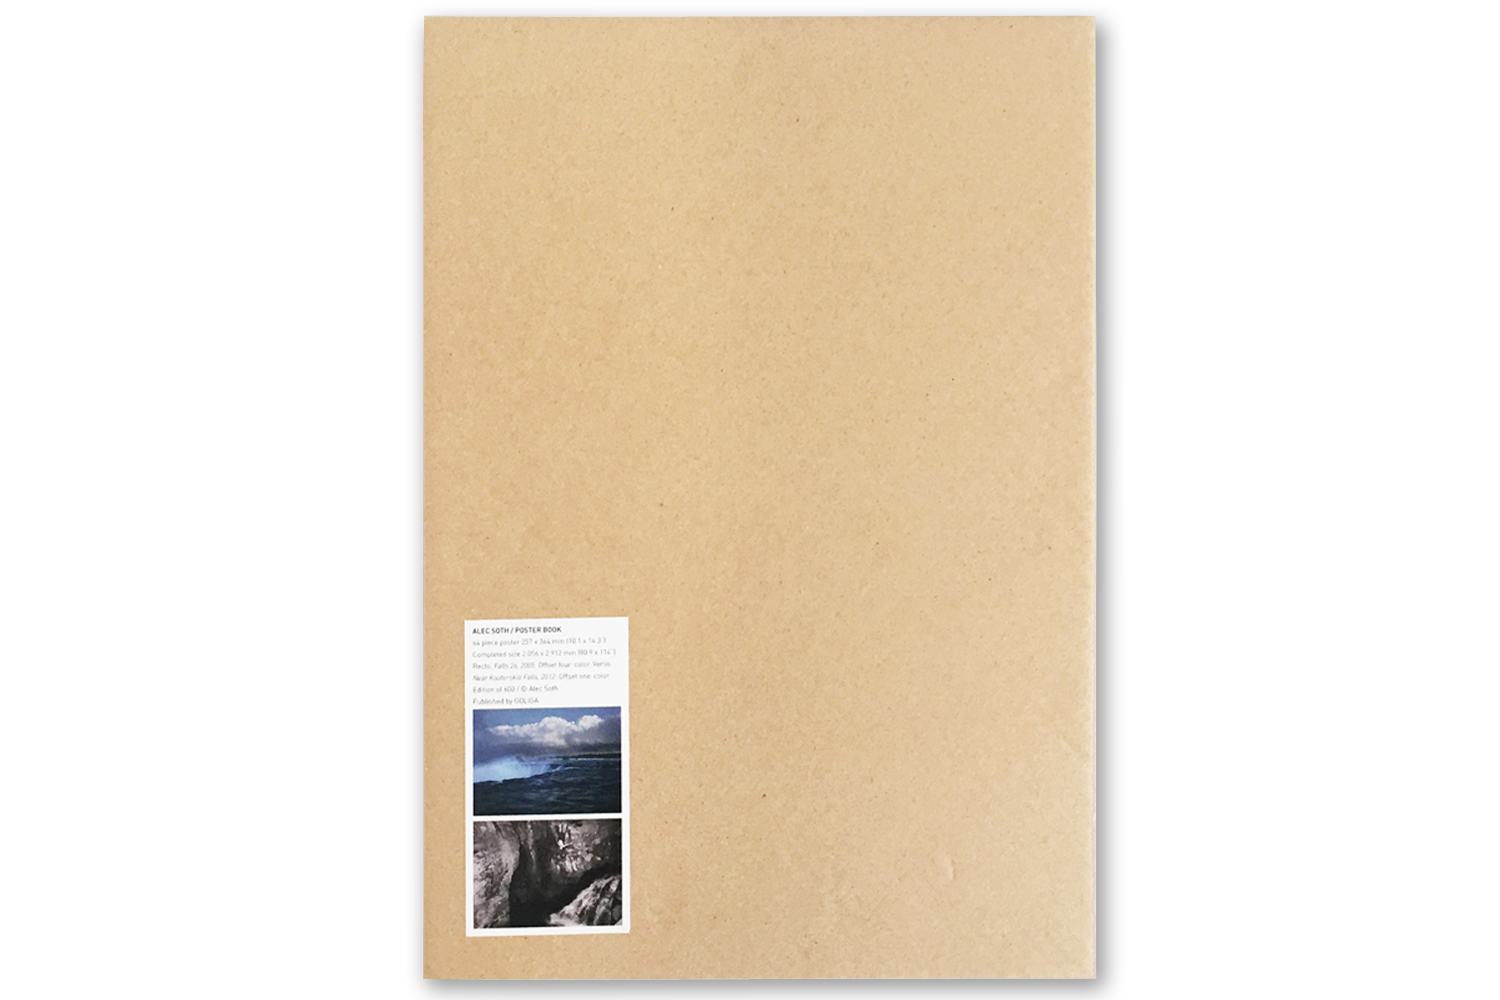 Alec Soth THE POSTER BOOK